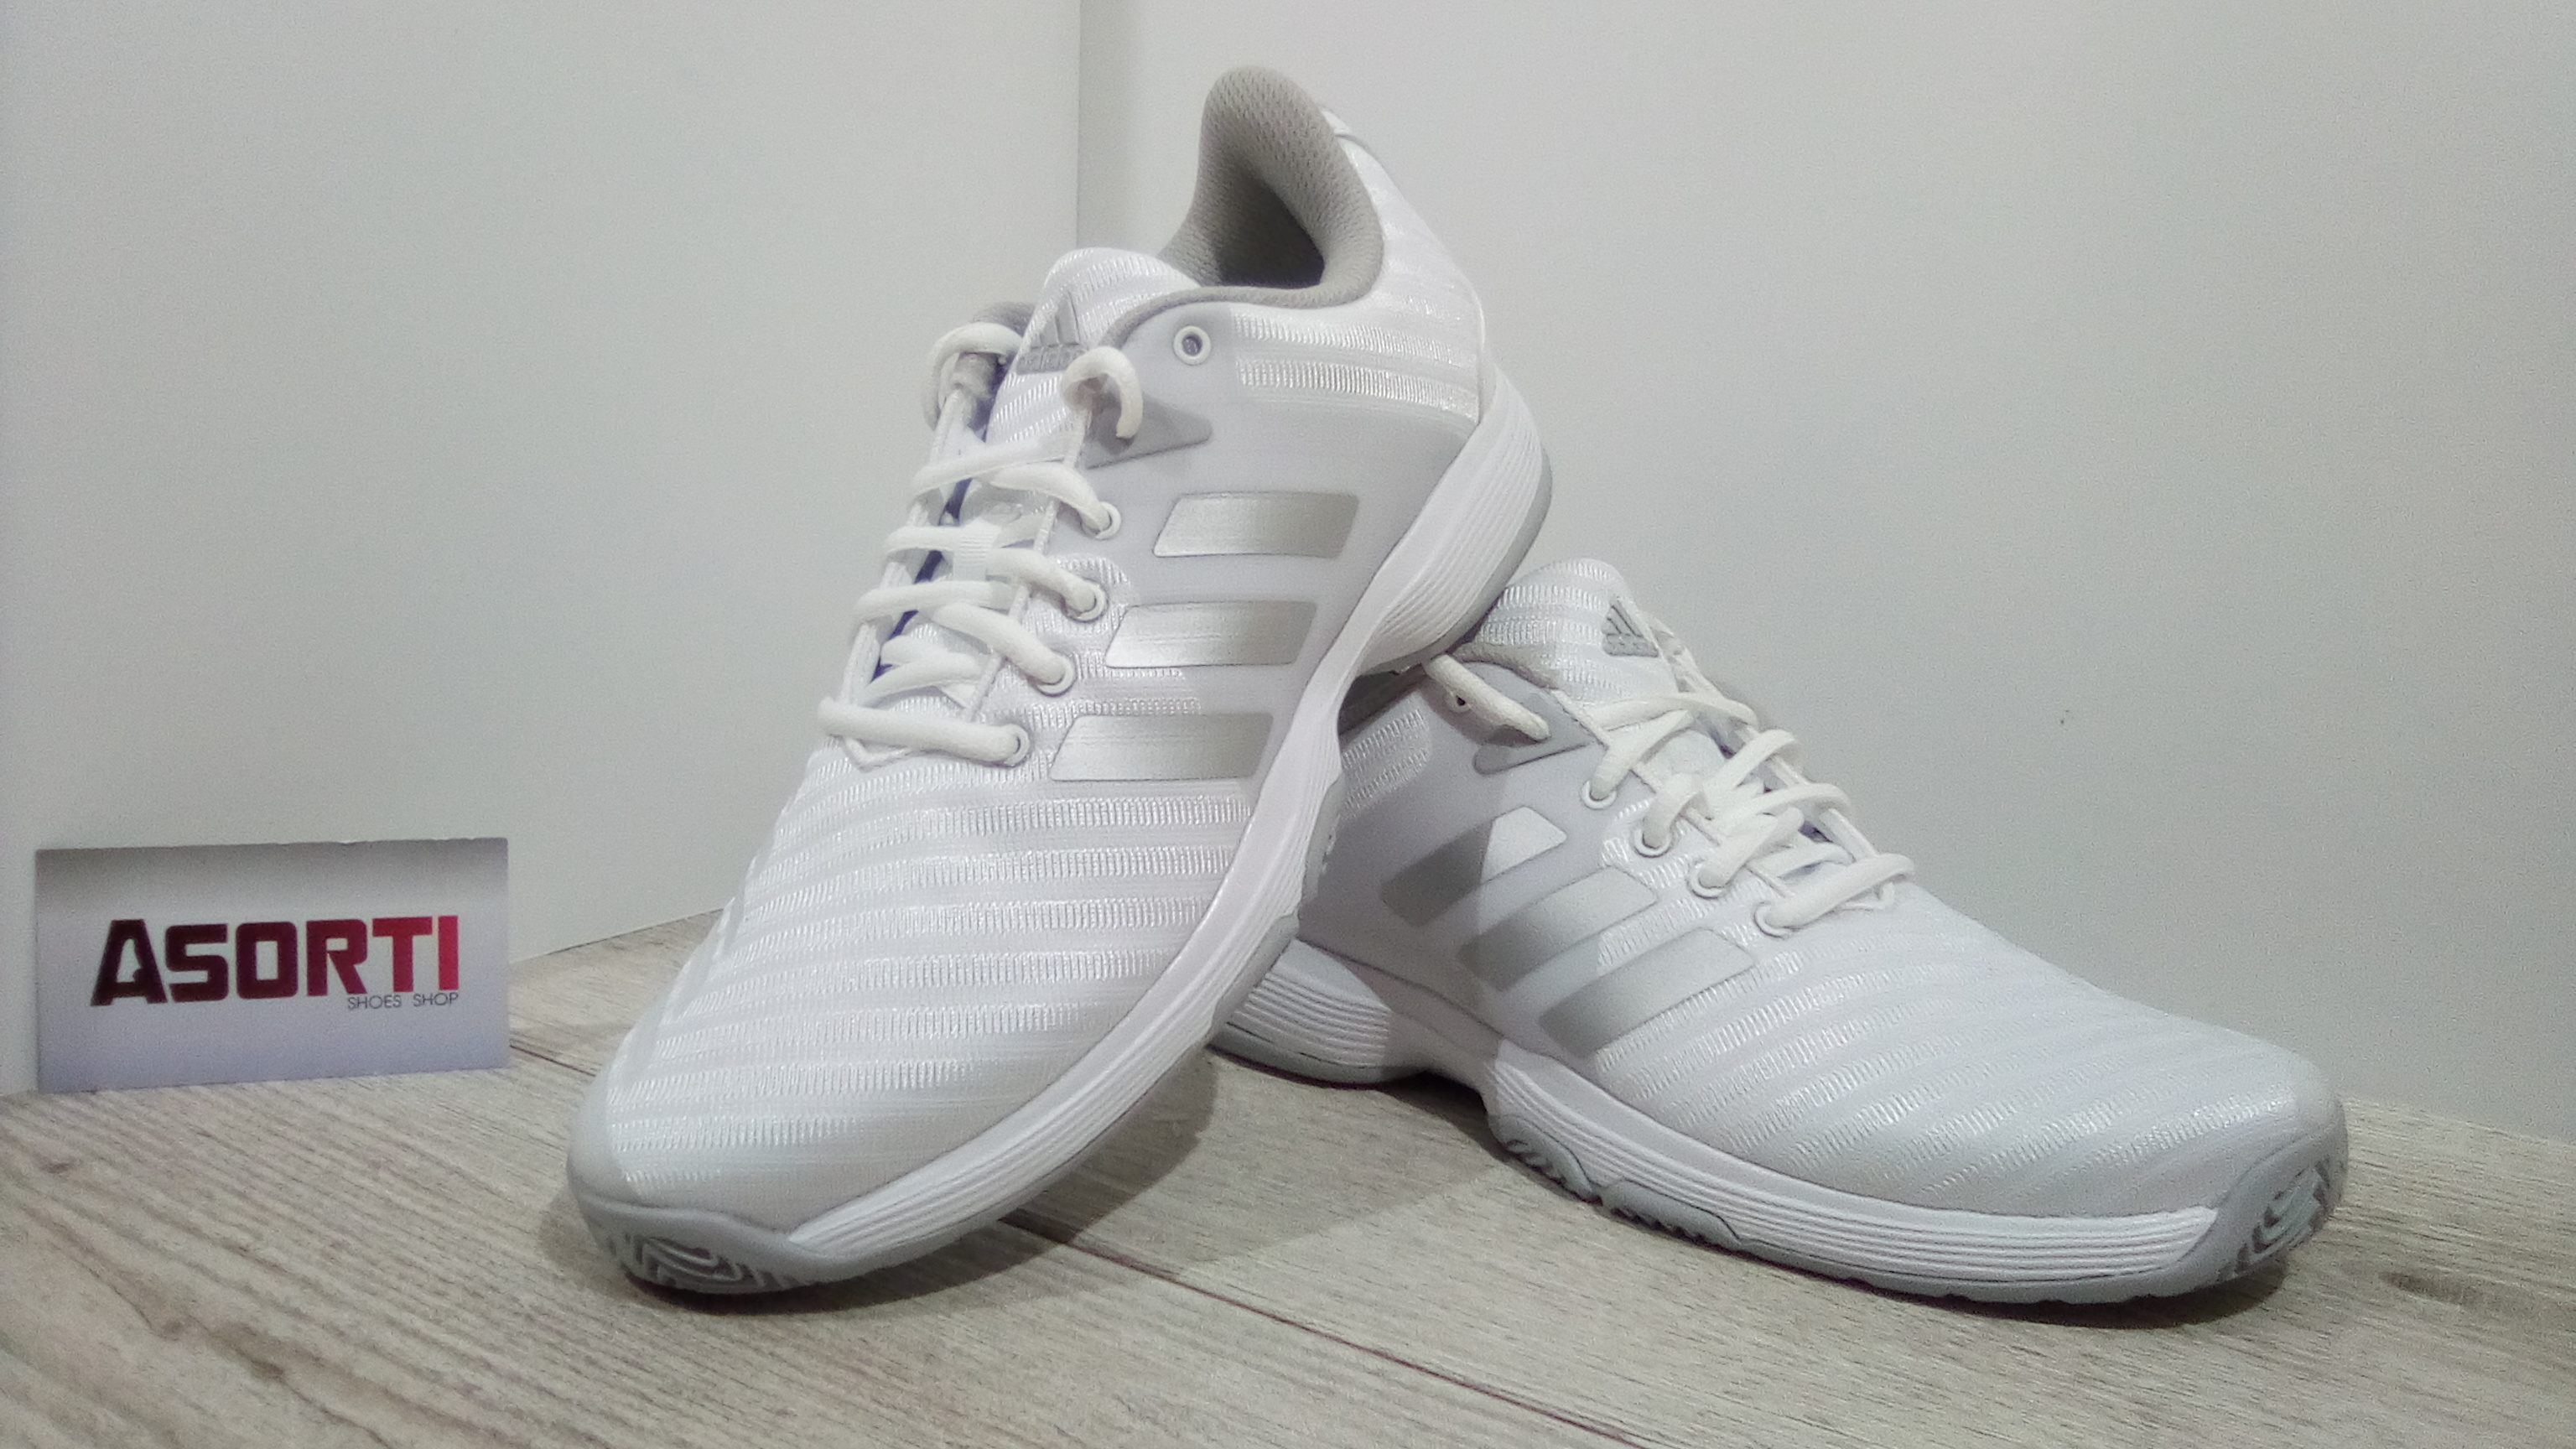 Жіночі кросівки Adidas Barricade Court W Womens Tennis (DB1746) білі ... 5066f50f8e8b2